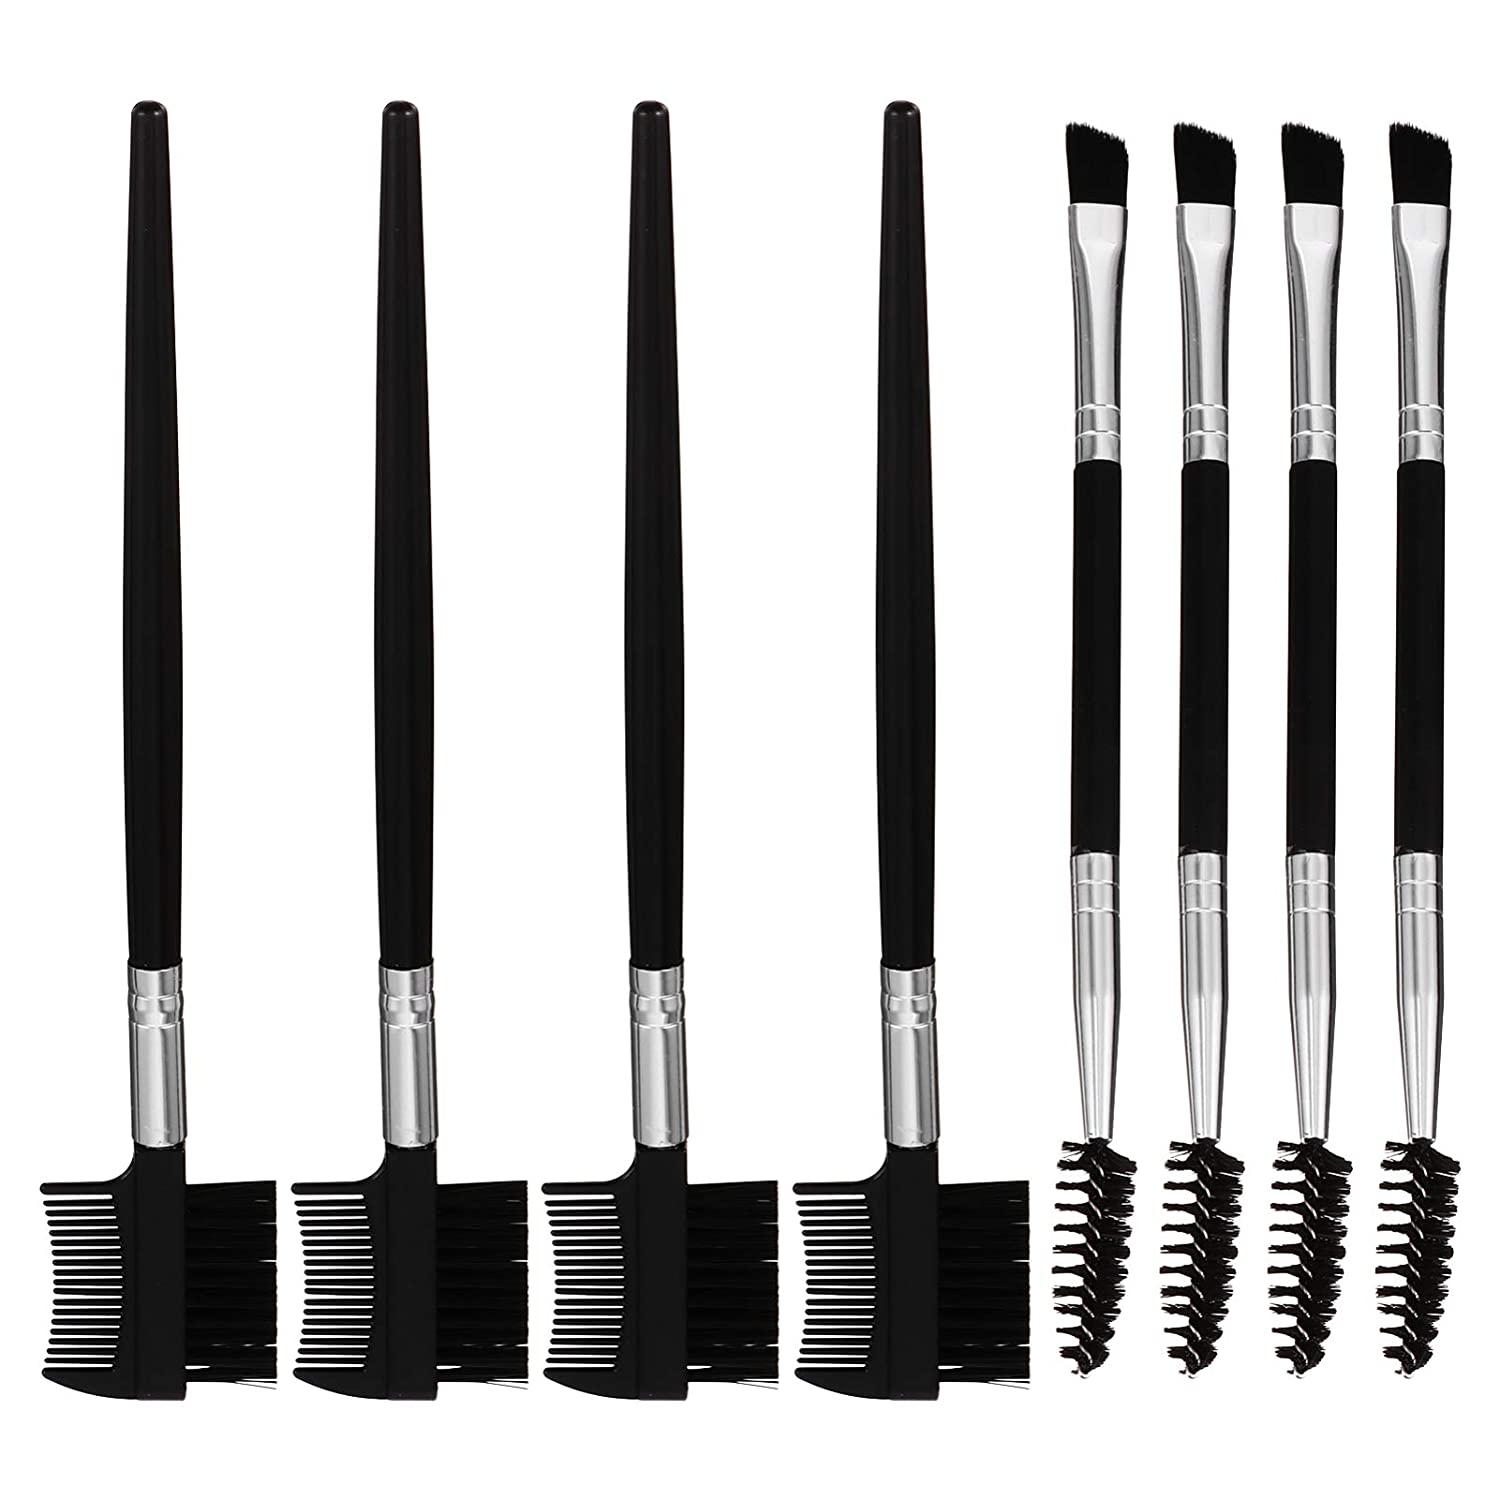 Beaupretty 8pcs Eyebrow Recommendation Spoolie Brush and Comb Eyelash Professio OFFicial store